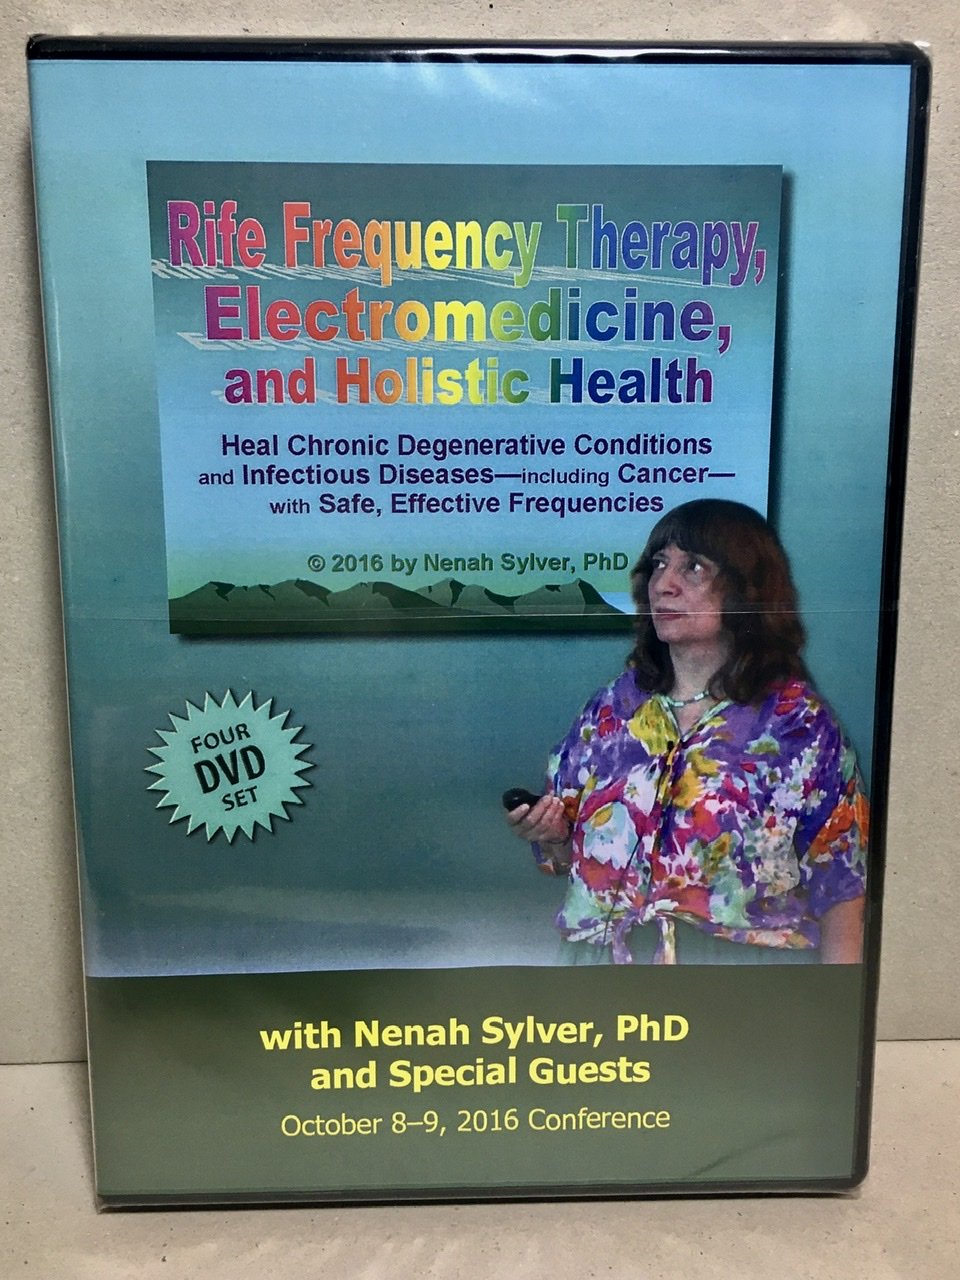 Image for Rife Frequency Therapy, Electromedicine, and Holistic Health 4-DVD Course SPECIAL SALE PRICE